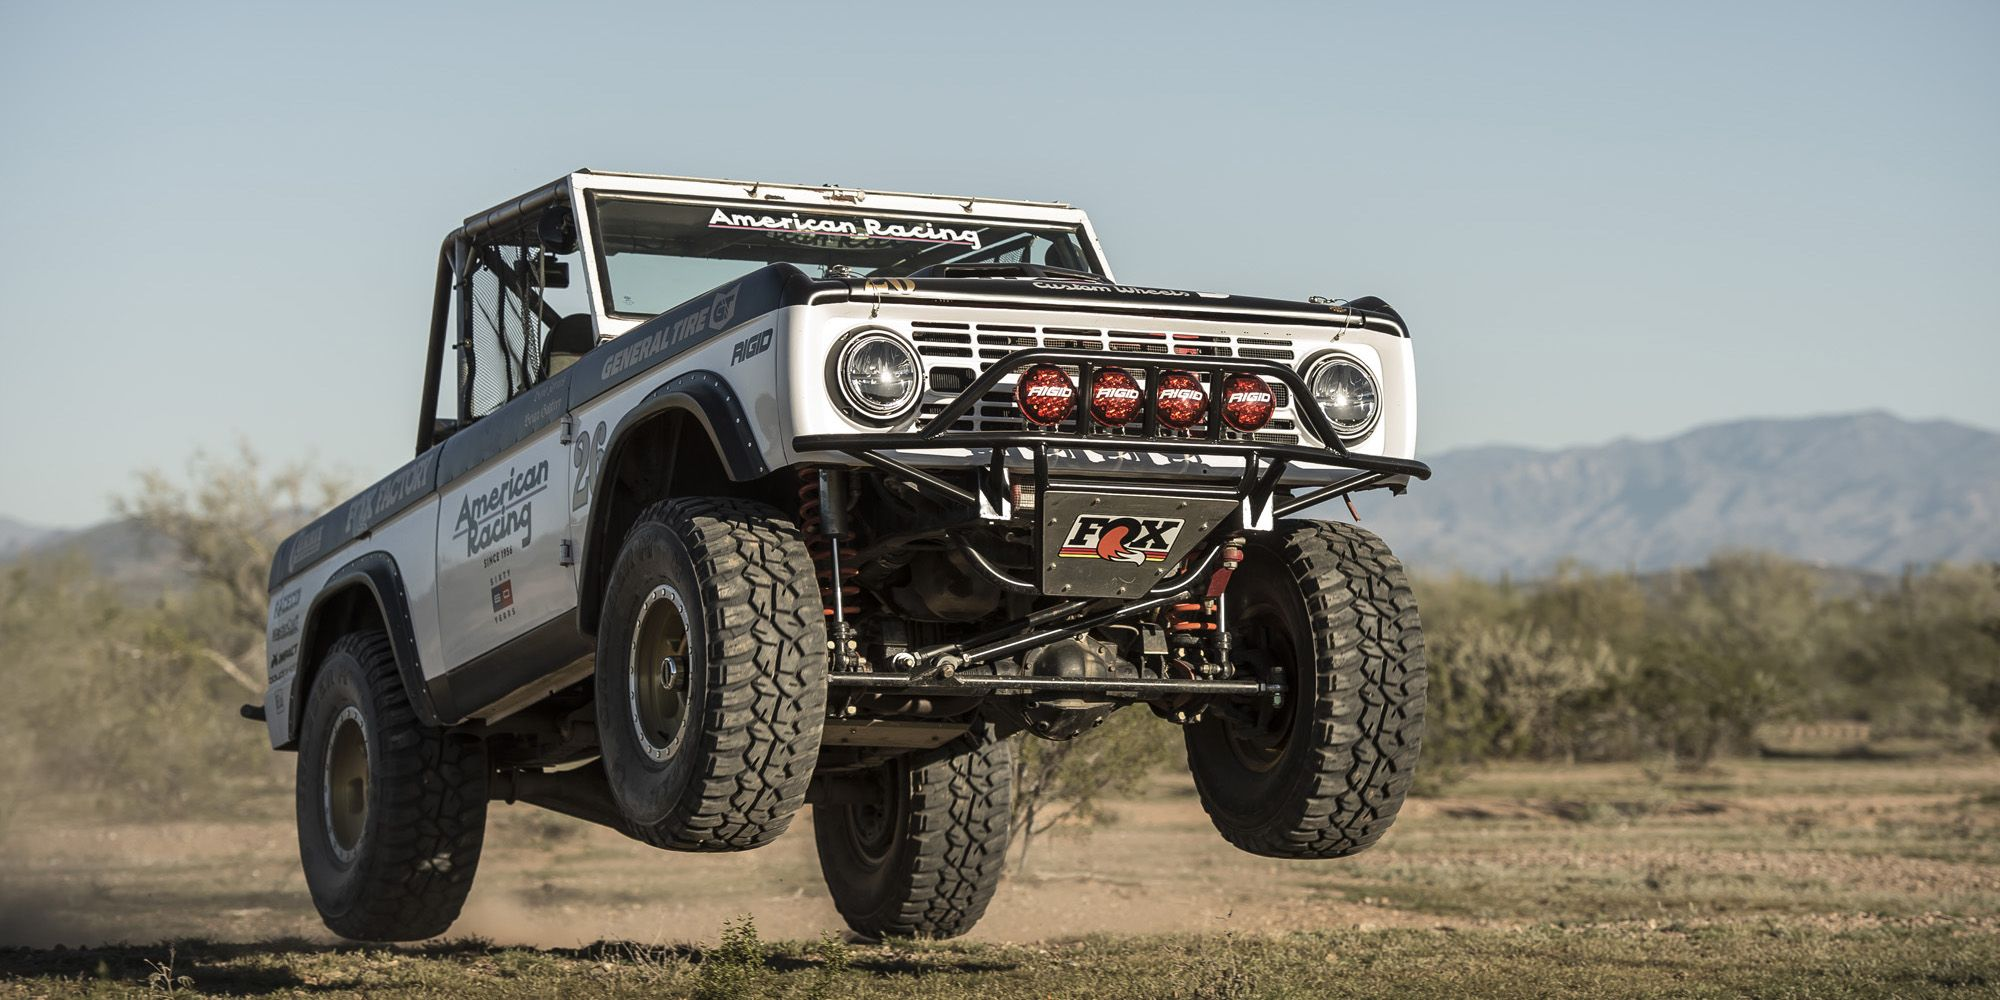 Vintage Bronco Desert Racing 1970 Ford Lifted